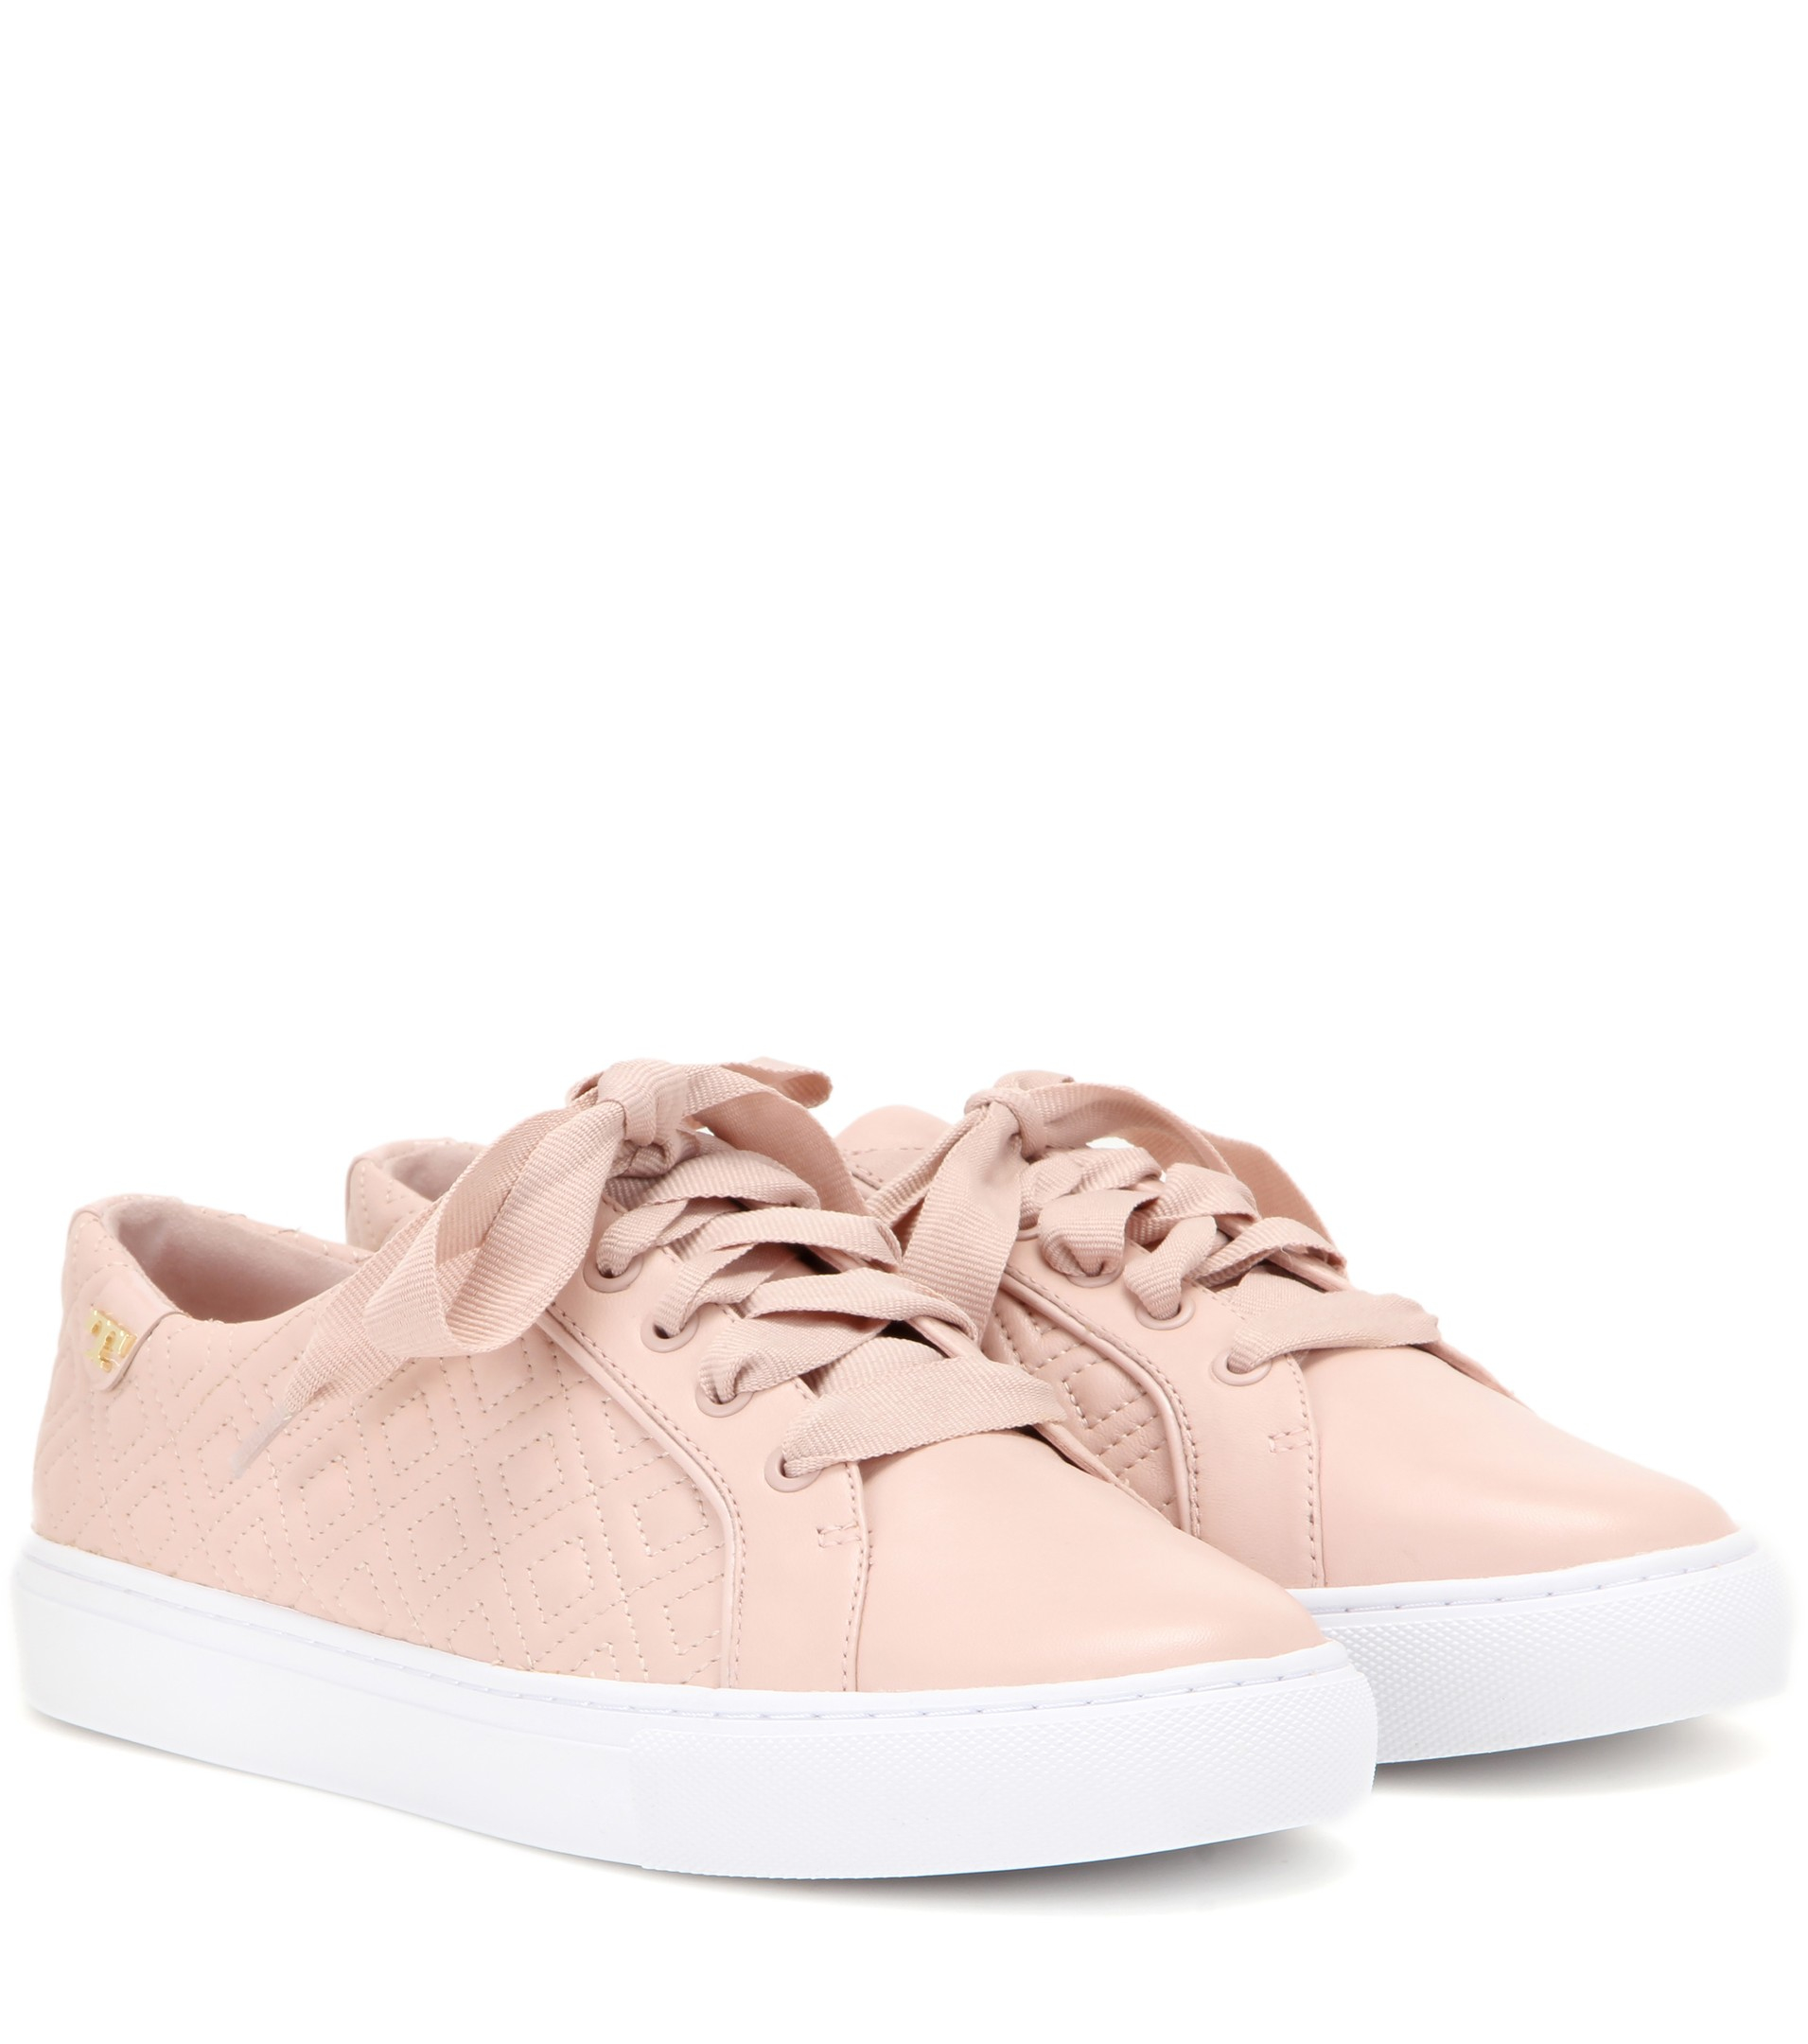 Tory Burch Ruffle embellished leather sneakers Official Cheap Price Quality From China Cheap Fake 5abIrljPJ